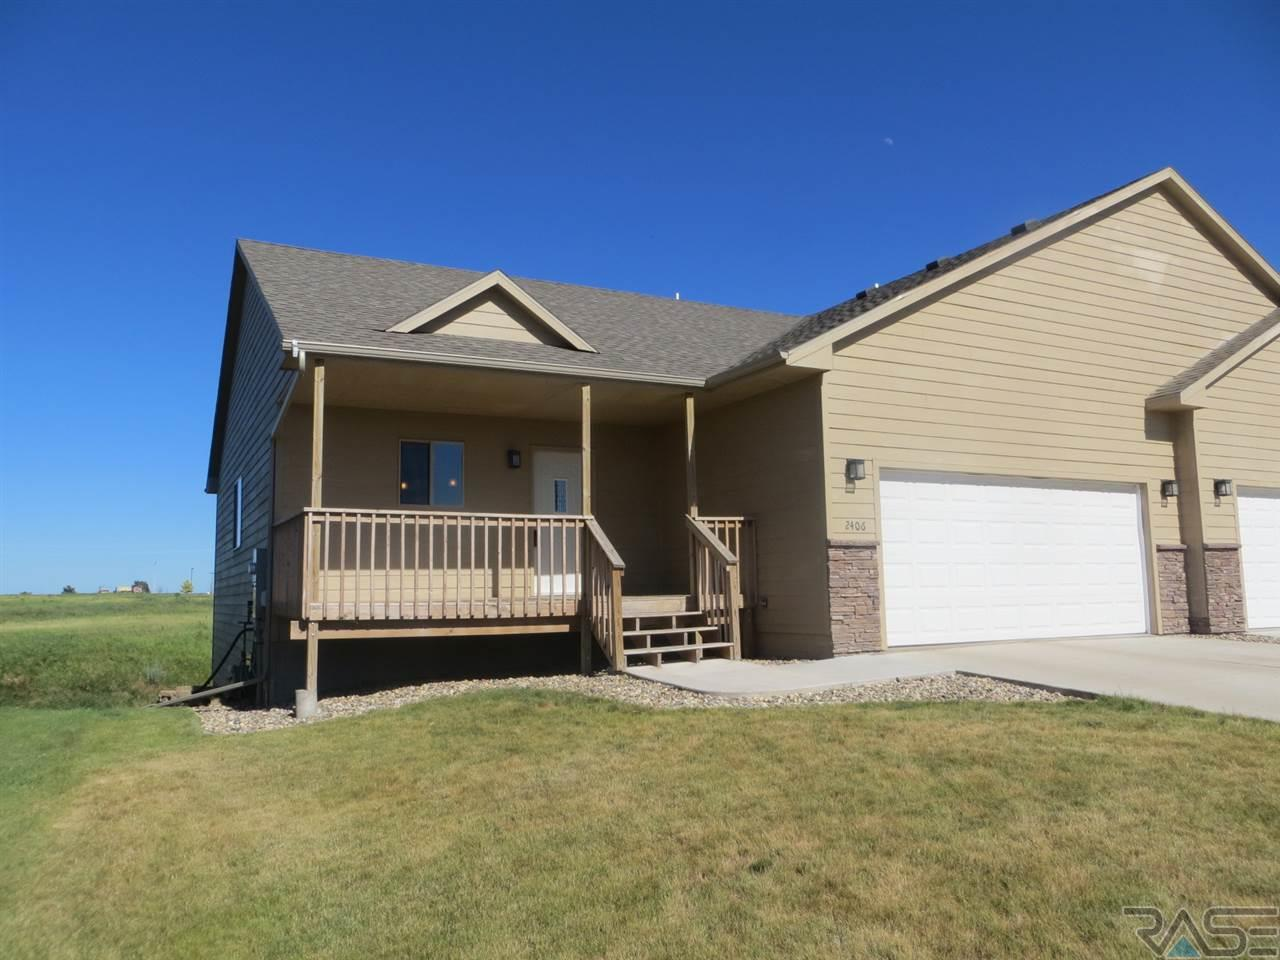 2406 N Wright Ave, Sioux Falls, SD 57104